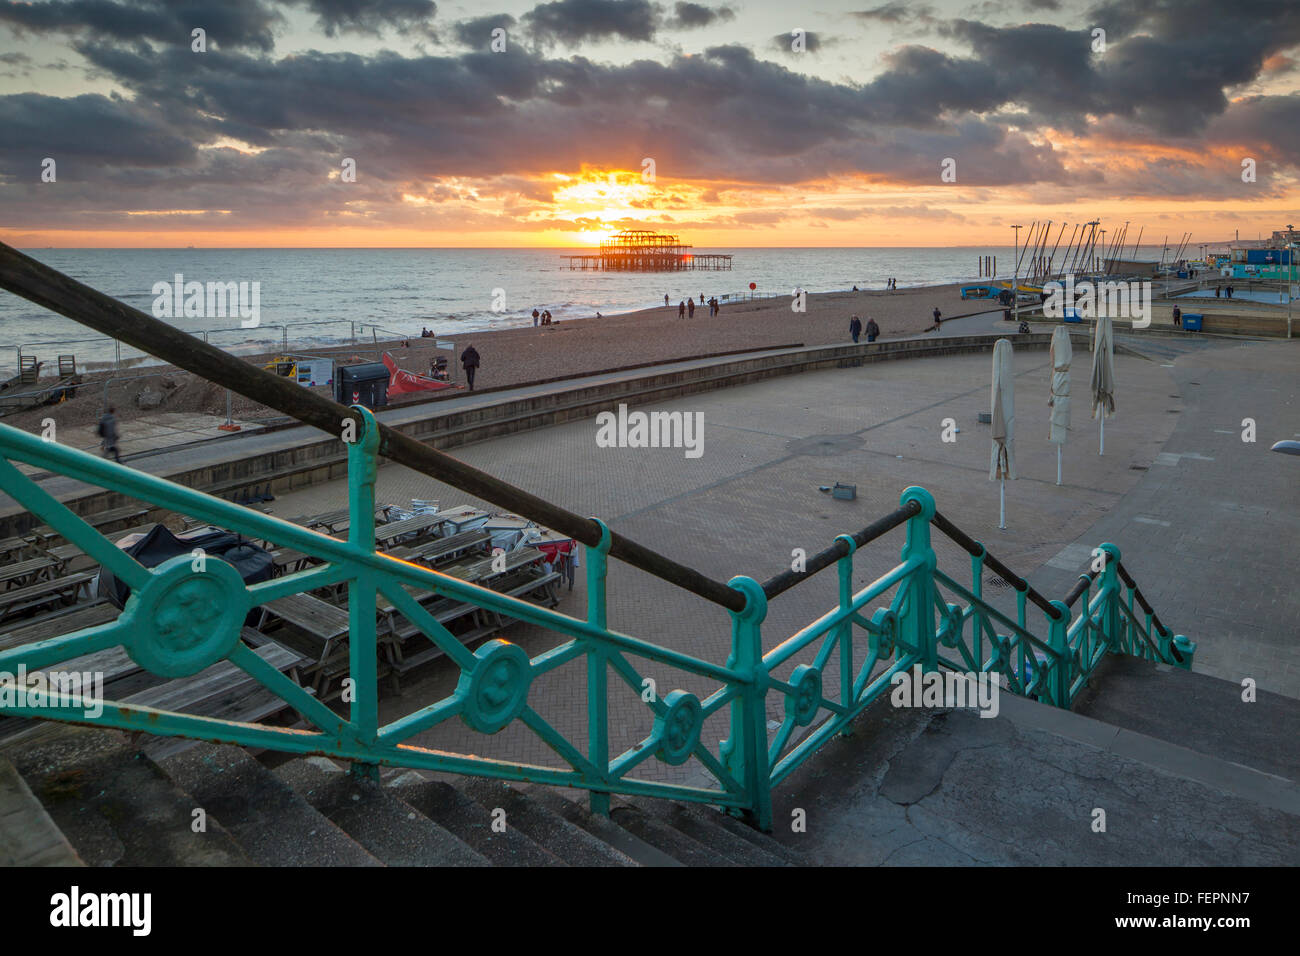 Winter sunset on Brighton seafront, East Sussex, England. Stock Photo